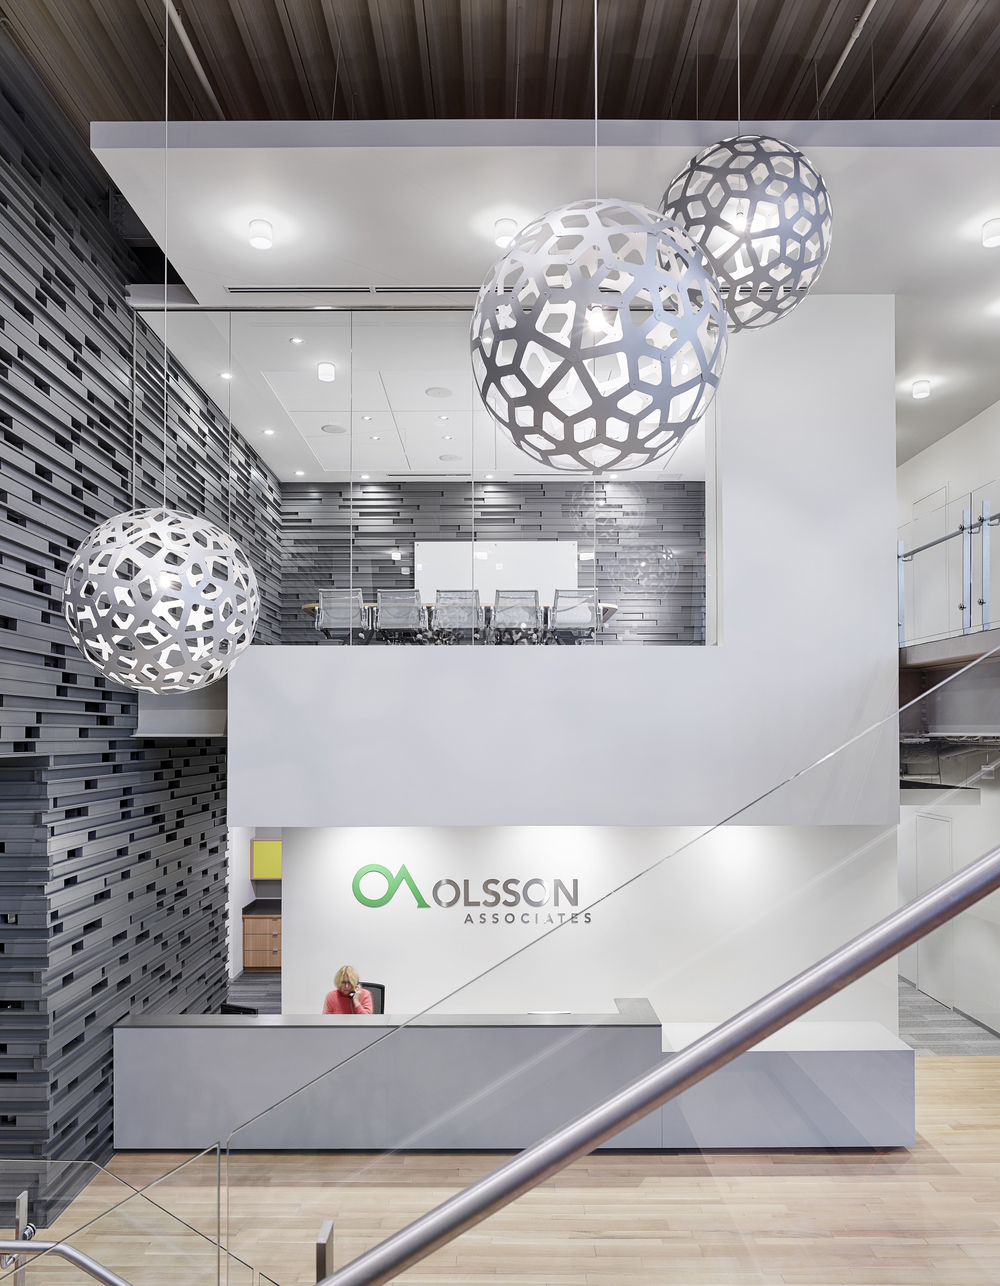 Olsson Associates Is A Civil Engineering Firm Founded In Lincoln Nebraska By John E The Company Boasts An Impressive History Of Acquisitions And